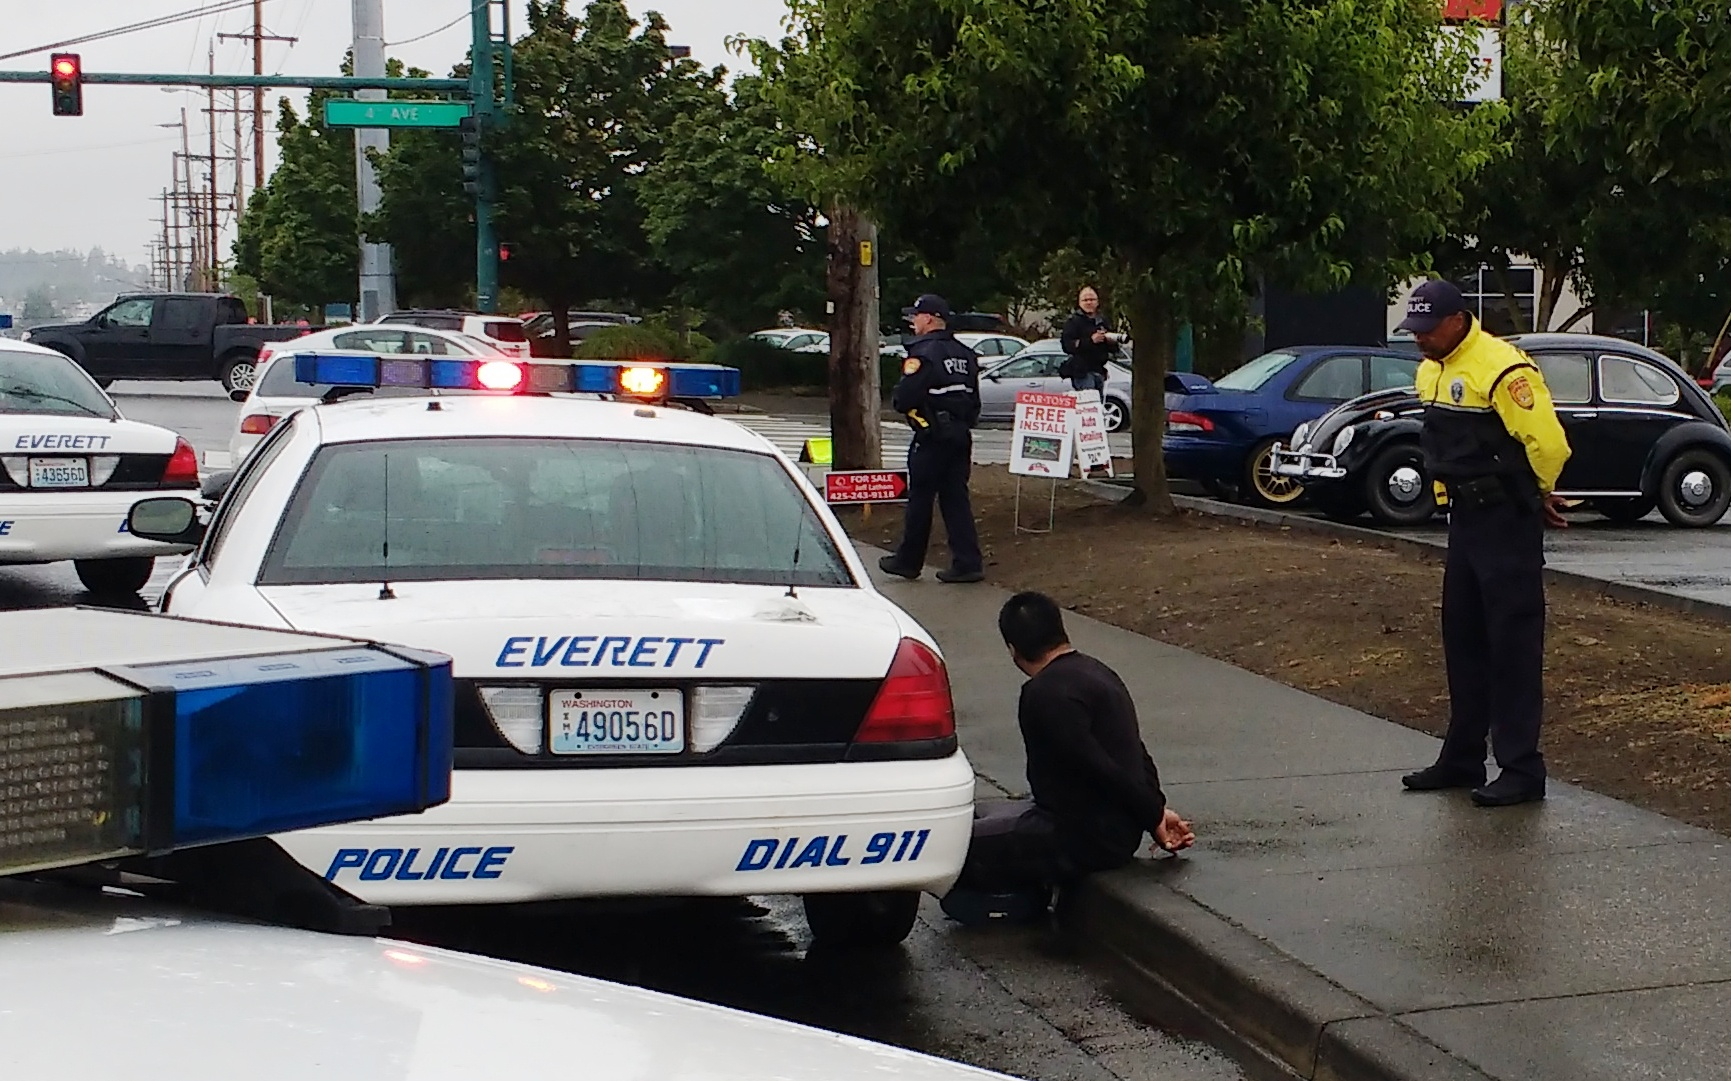 Attempted Kidnapping At S Everett Ihop Lot Myeverettnews Com